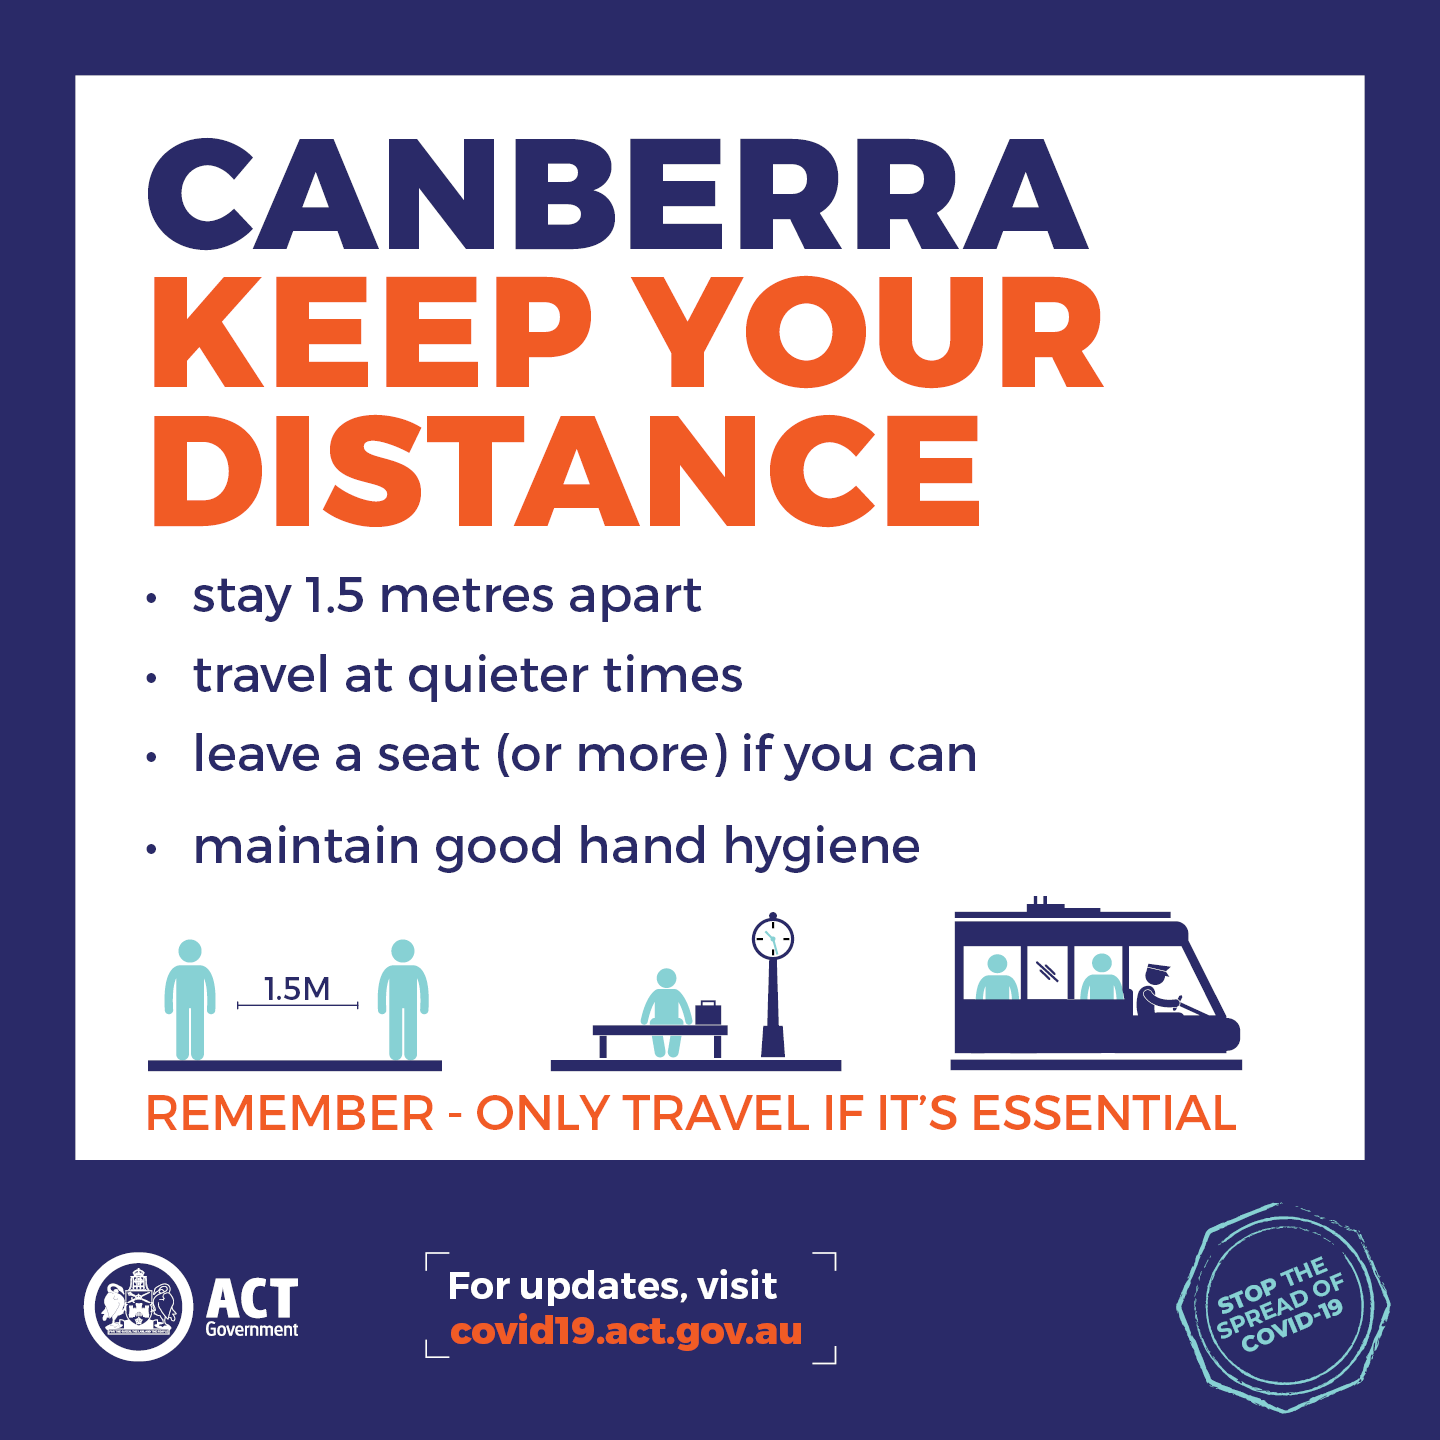 Canberra keep your distance on public transport